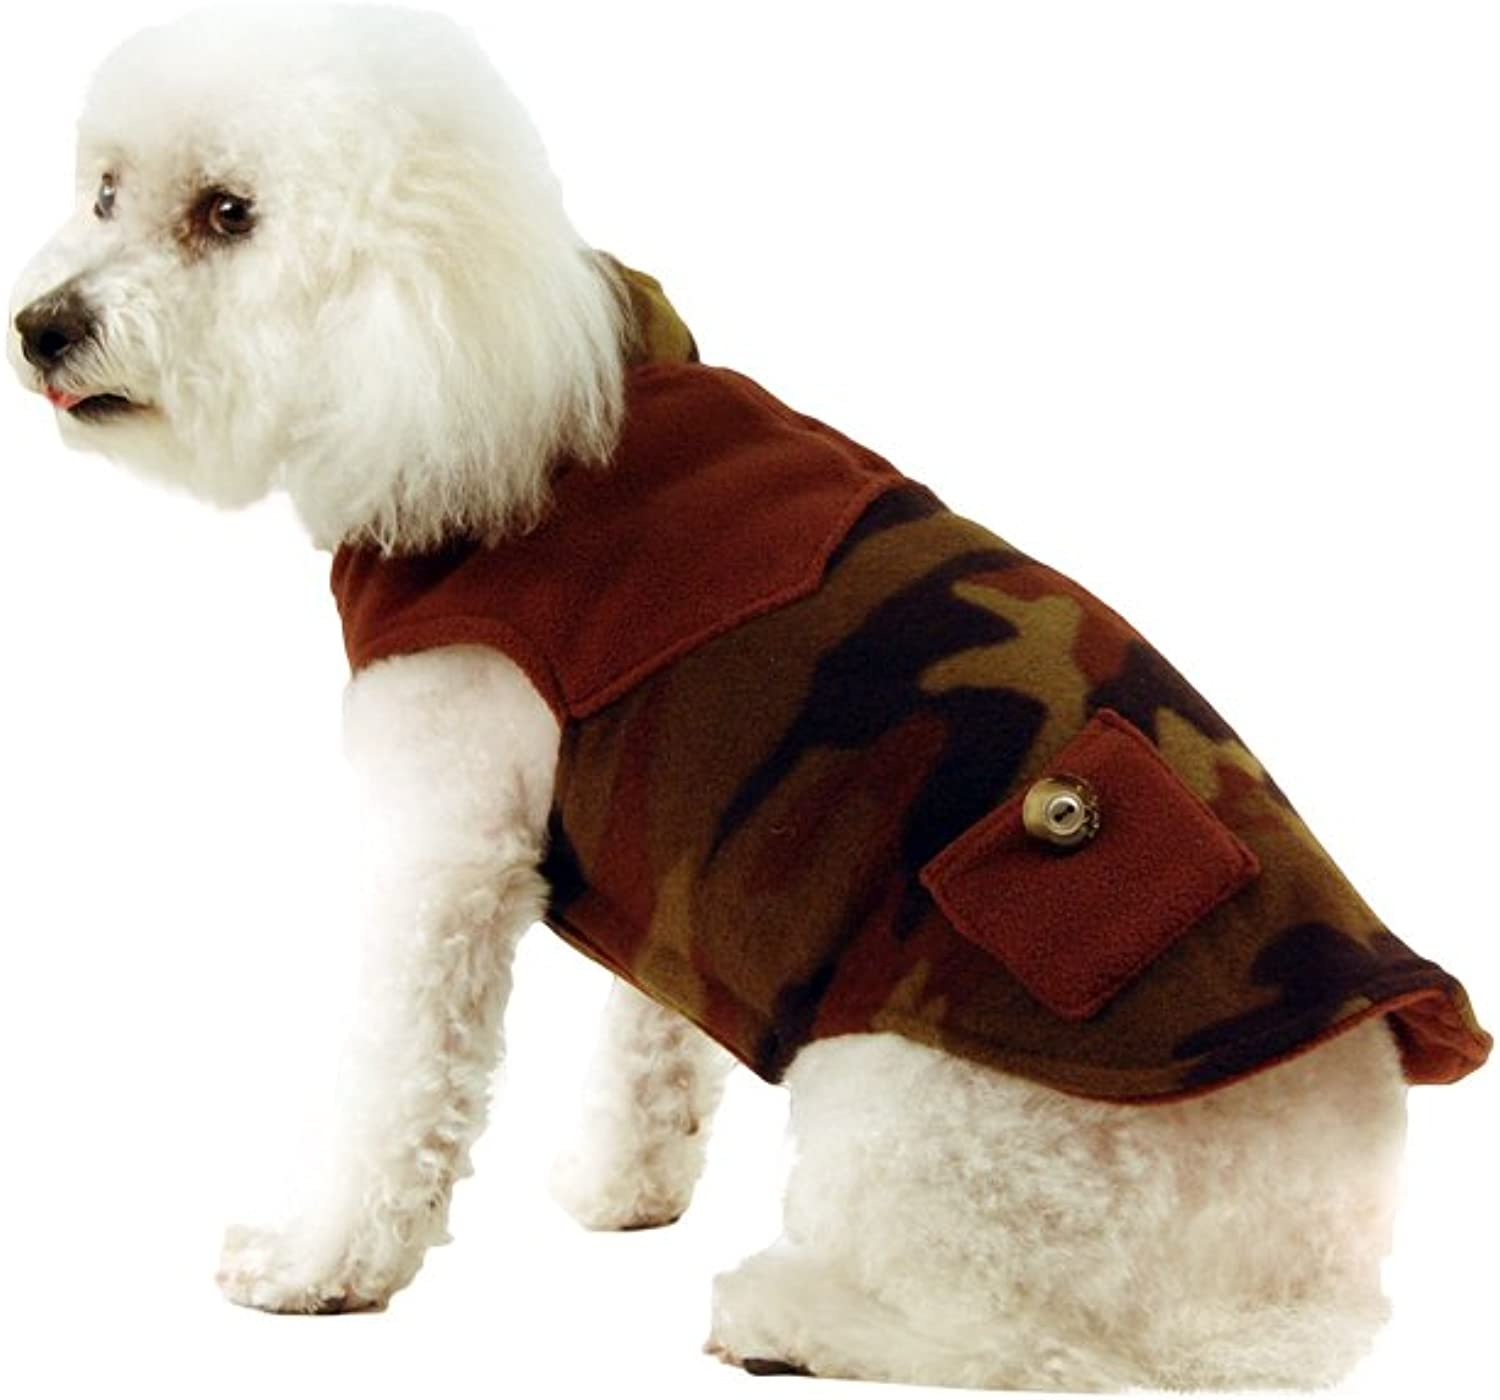 Doggy Wrappers Double Fleece Dog Coat with Pockets, 10, Camo